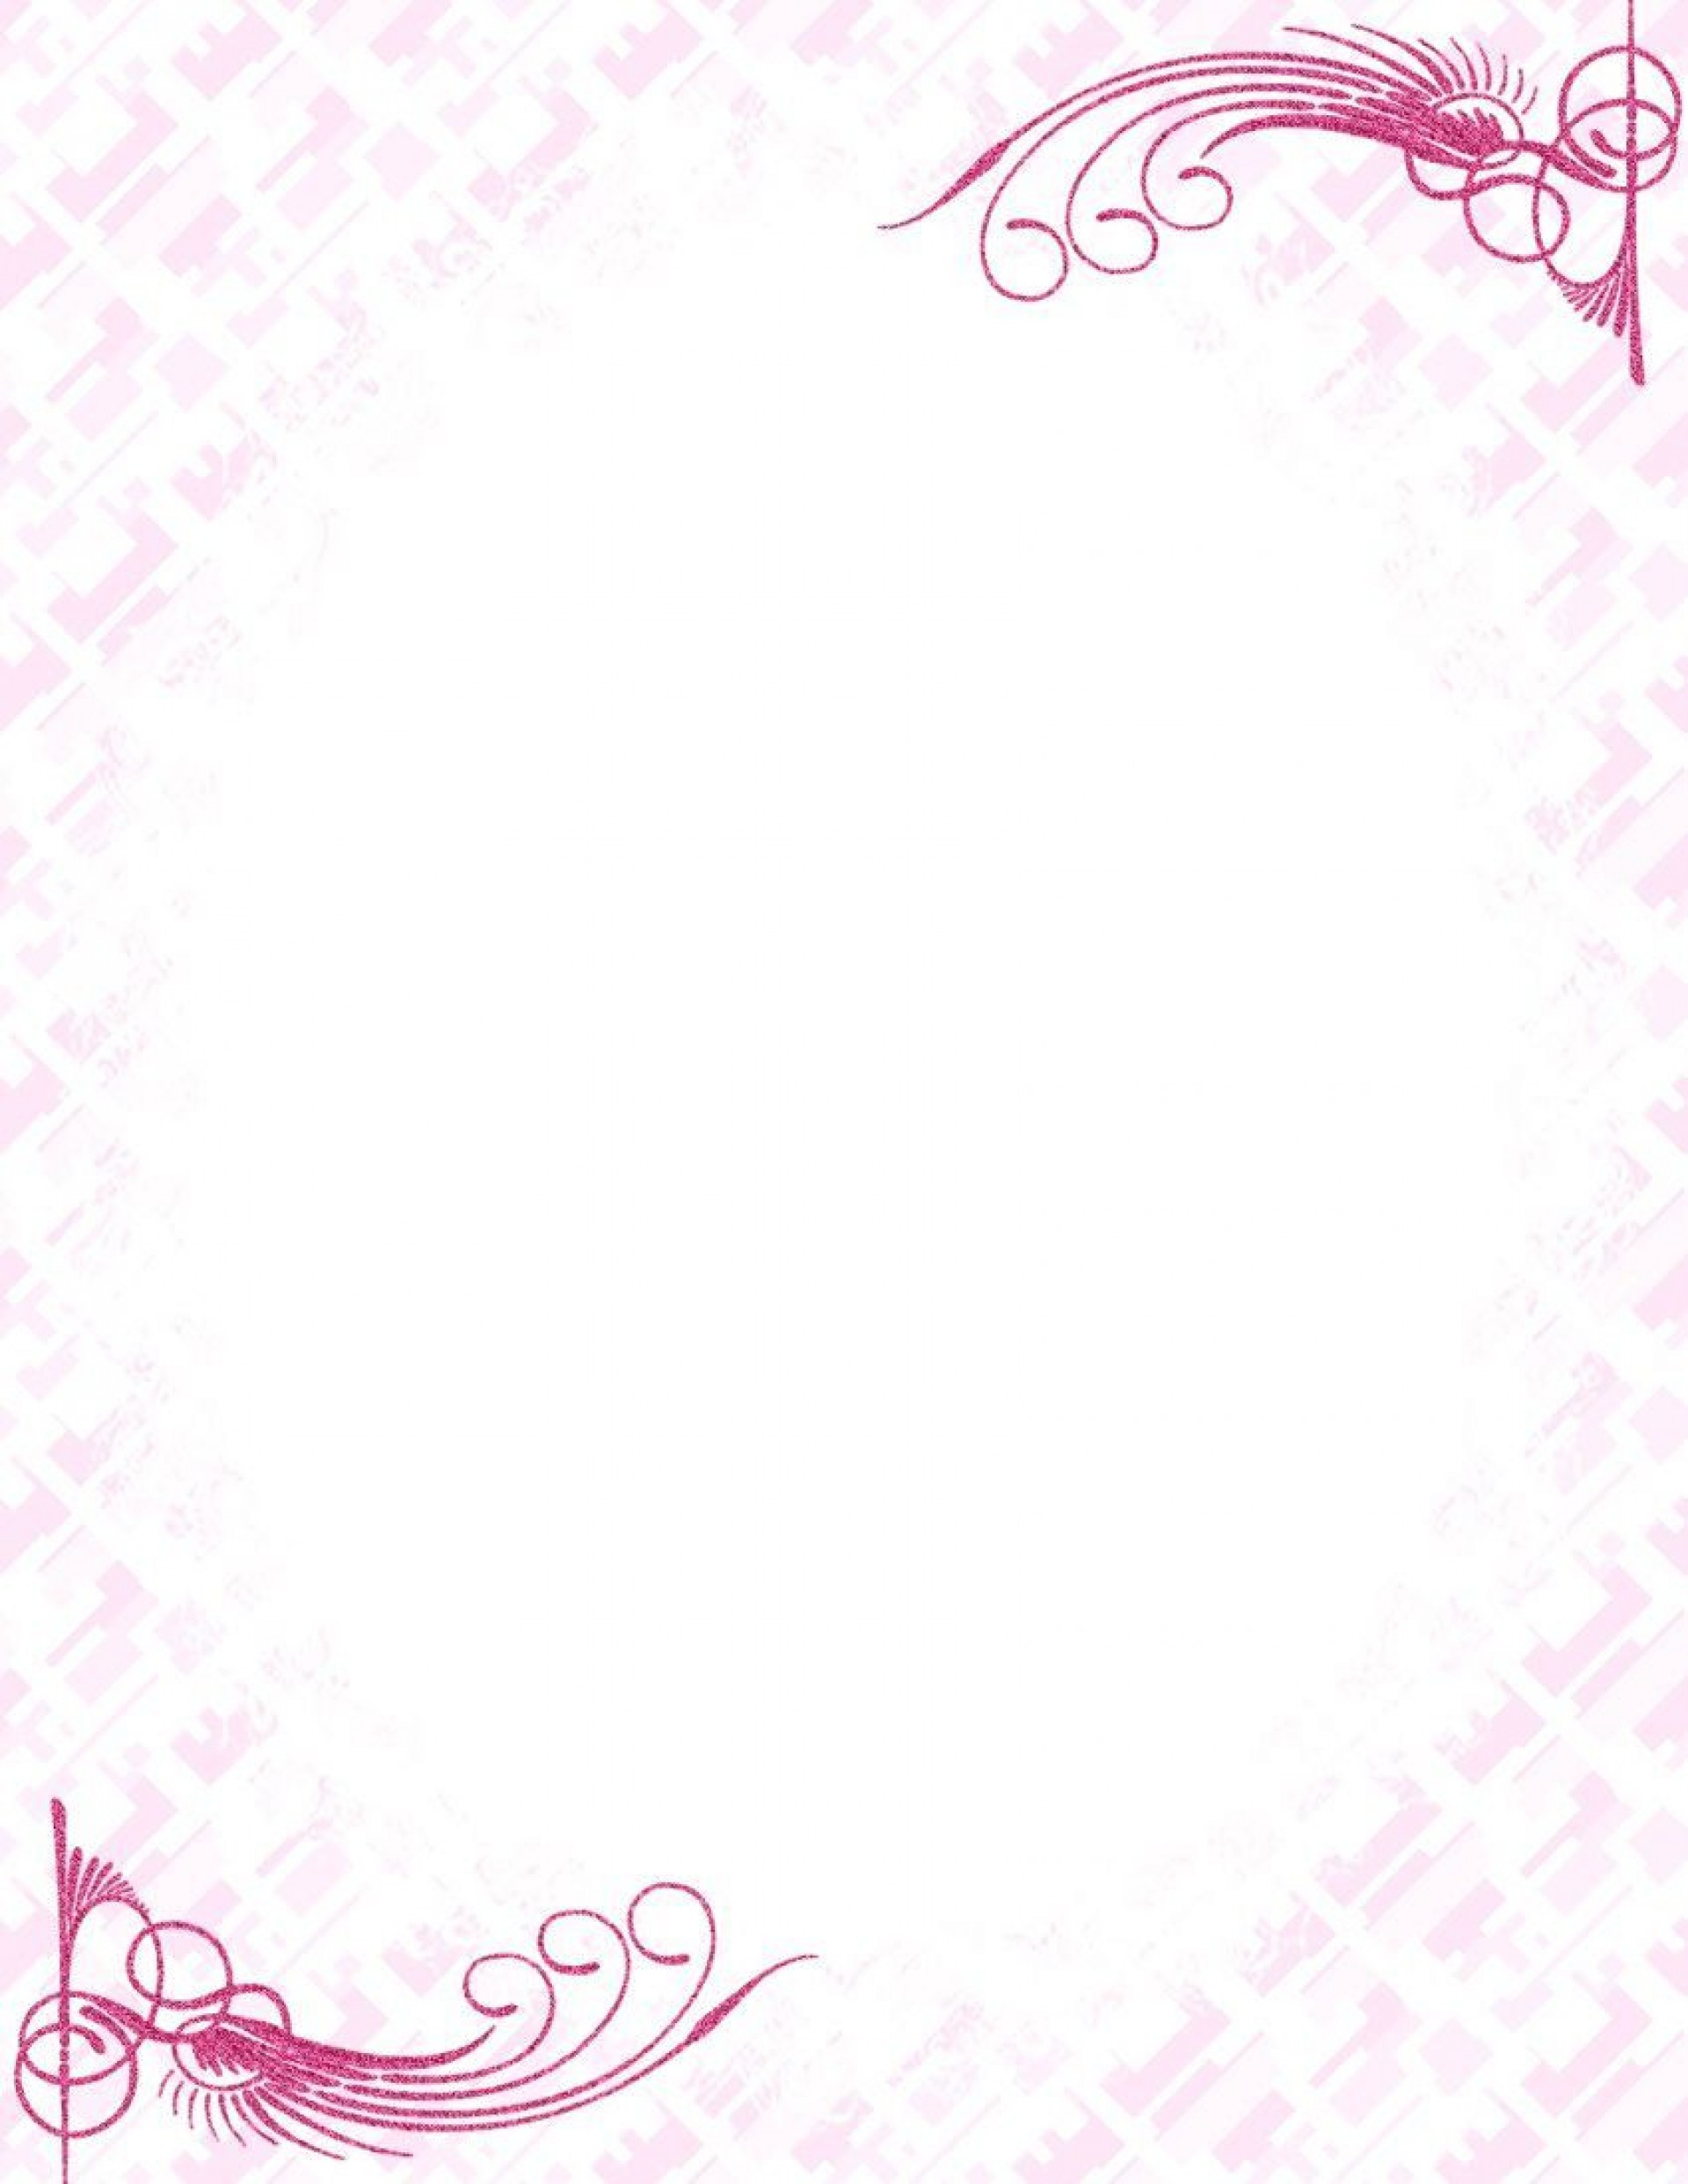 009 Top Free Printable Stationery Paper Template Highest Clarity  Templates1920